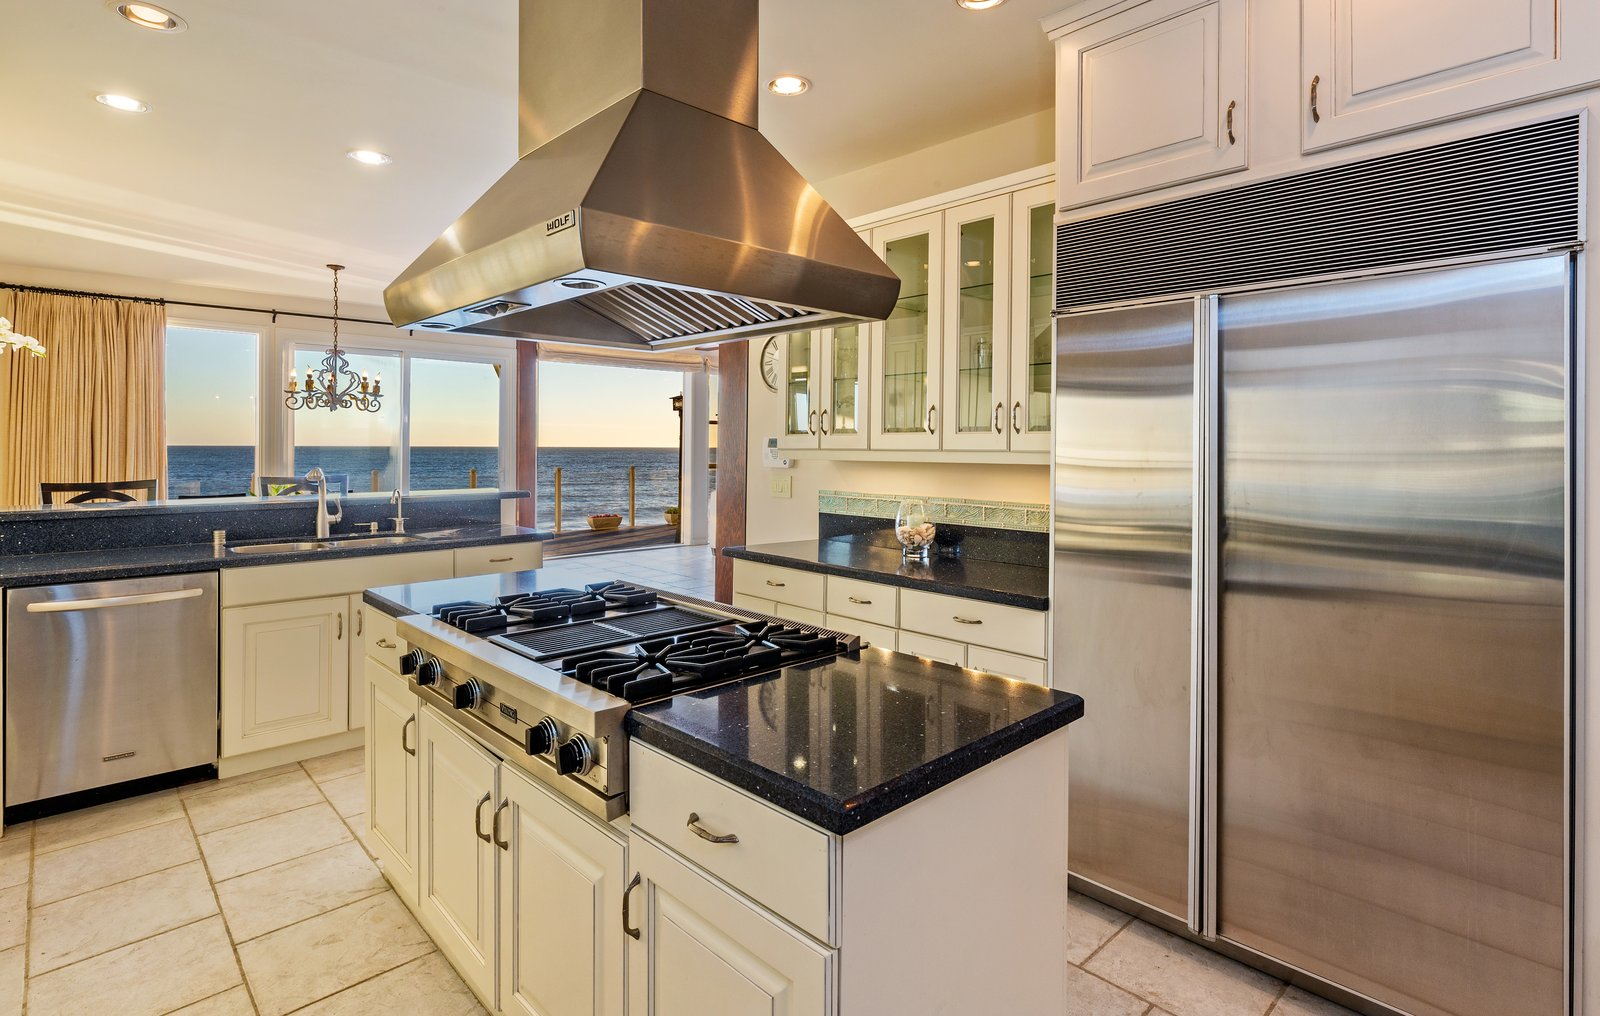 Kitchen, Refrigerator, Ceramic Tile Floor, Cooktops, Range Hood, and White Cabinet The recently updated kitchen includes top-of-the-line appliances and finishes.  Photo 9 of 12 in 'Brady Bunch' Actor Barry Williams Lists His Malibu Home For $6.4M